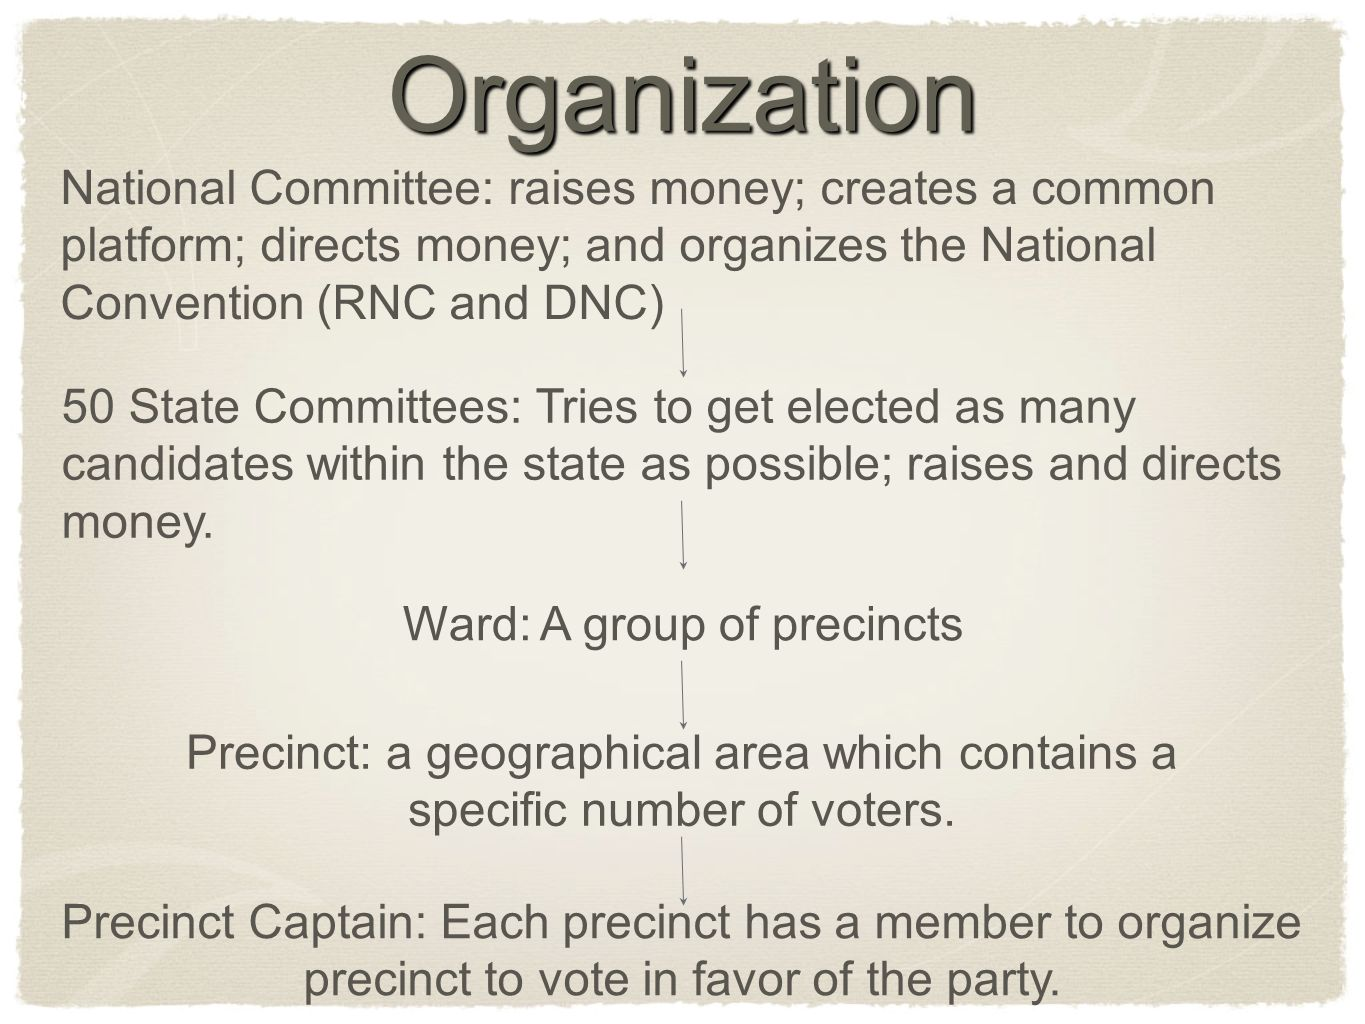 Organization National Committee: raises money; creates a common platform; directs money; and organizes the National Convention (RNC and DNC) 50 State Committees: Tries to get elected as many candidates within the state as possible; raises and directs money.